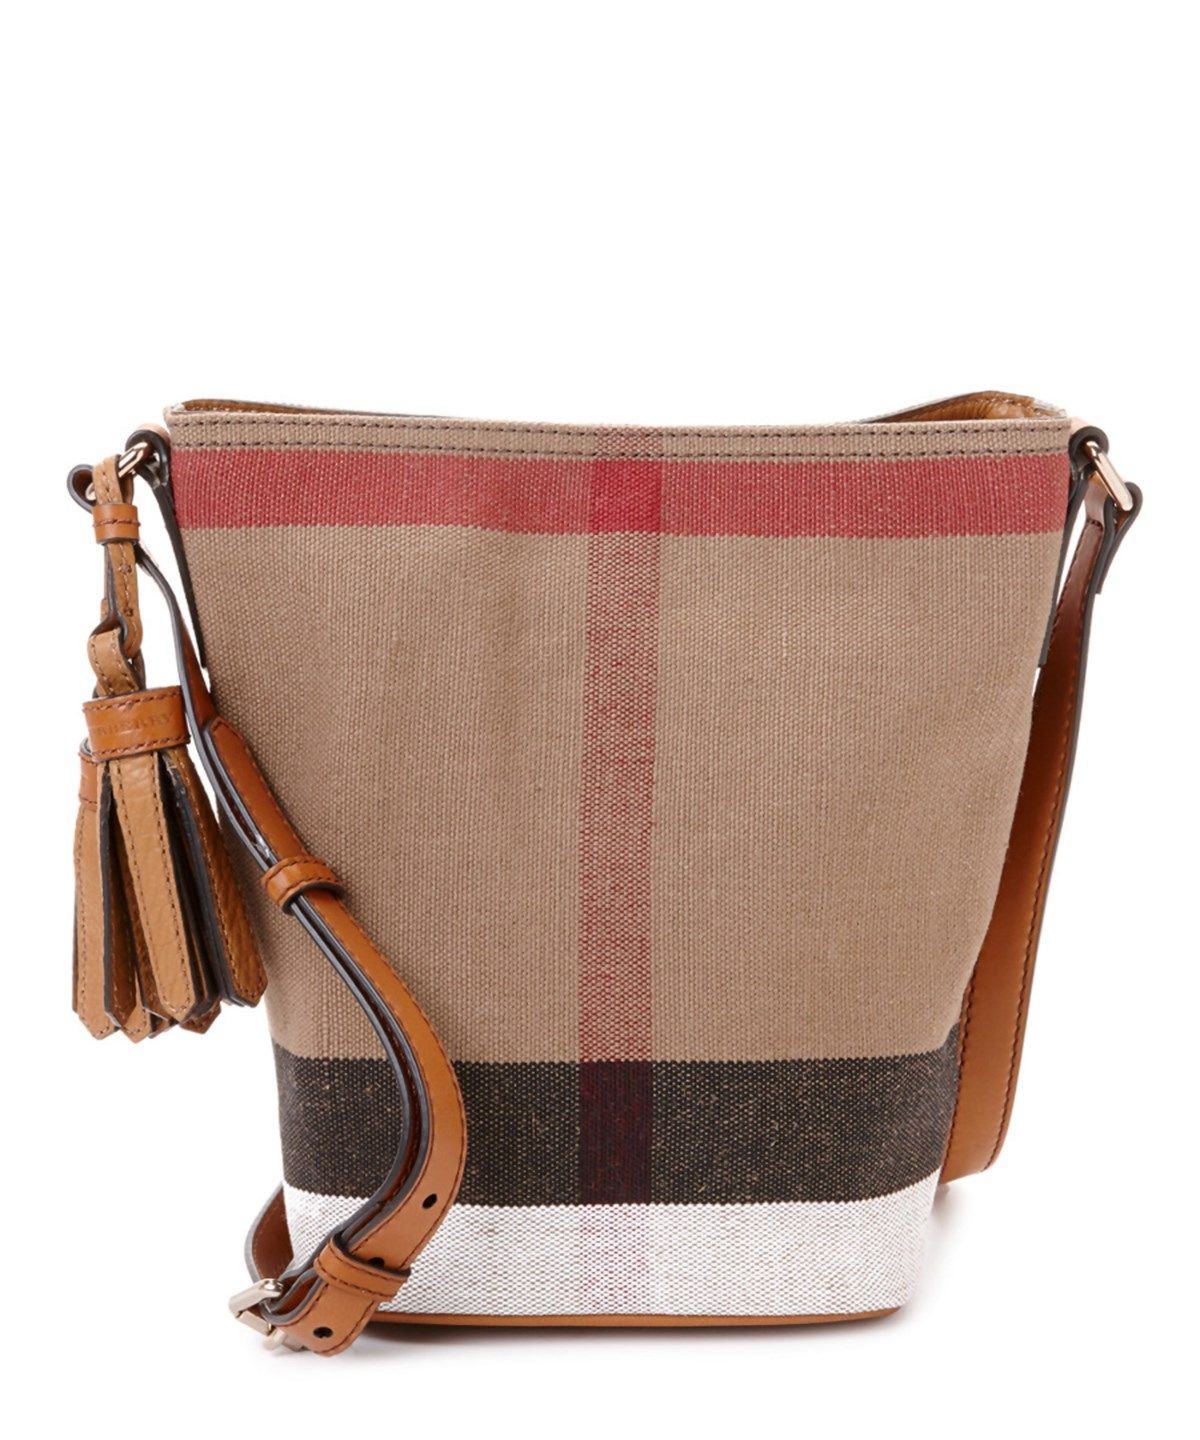 d0d7f881d1d9 BURBERRY Burberry Ashby Small Canvas Check  Amp  Leather Bucket Bag .   burberry  bags  shoulder bags  leather  canvas  bucket  lining